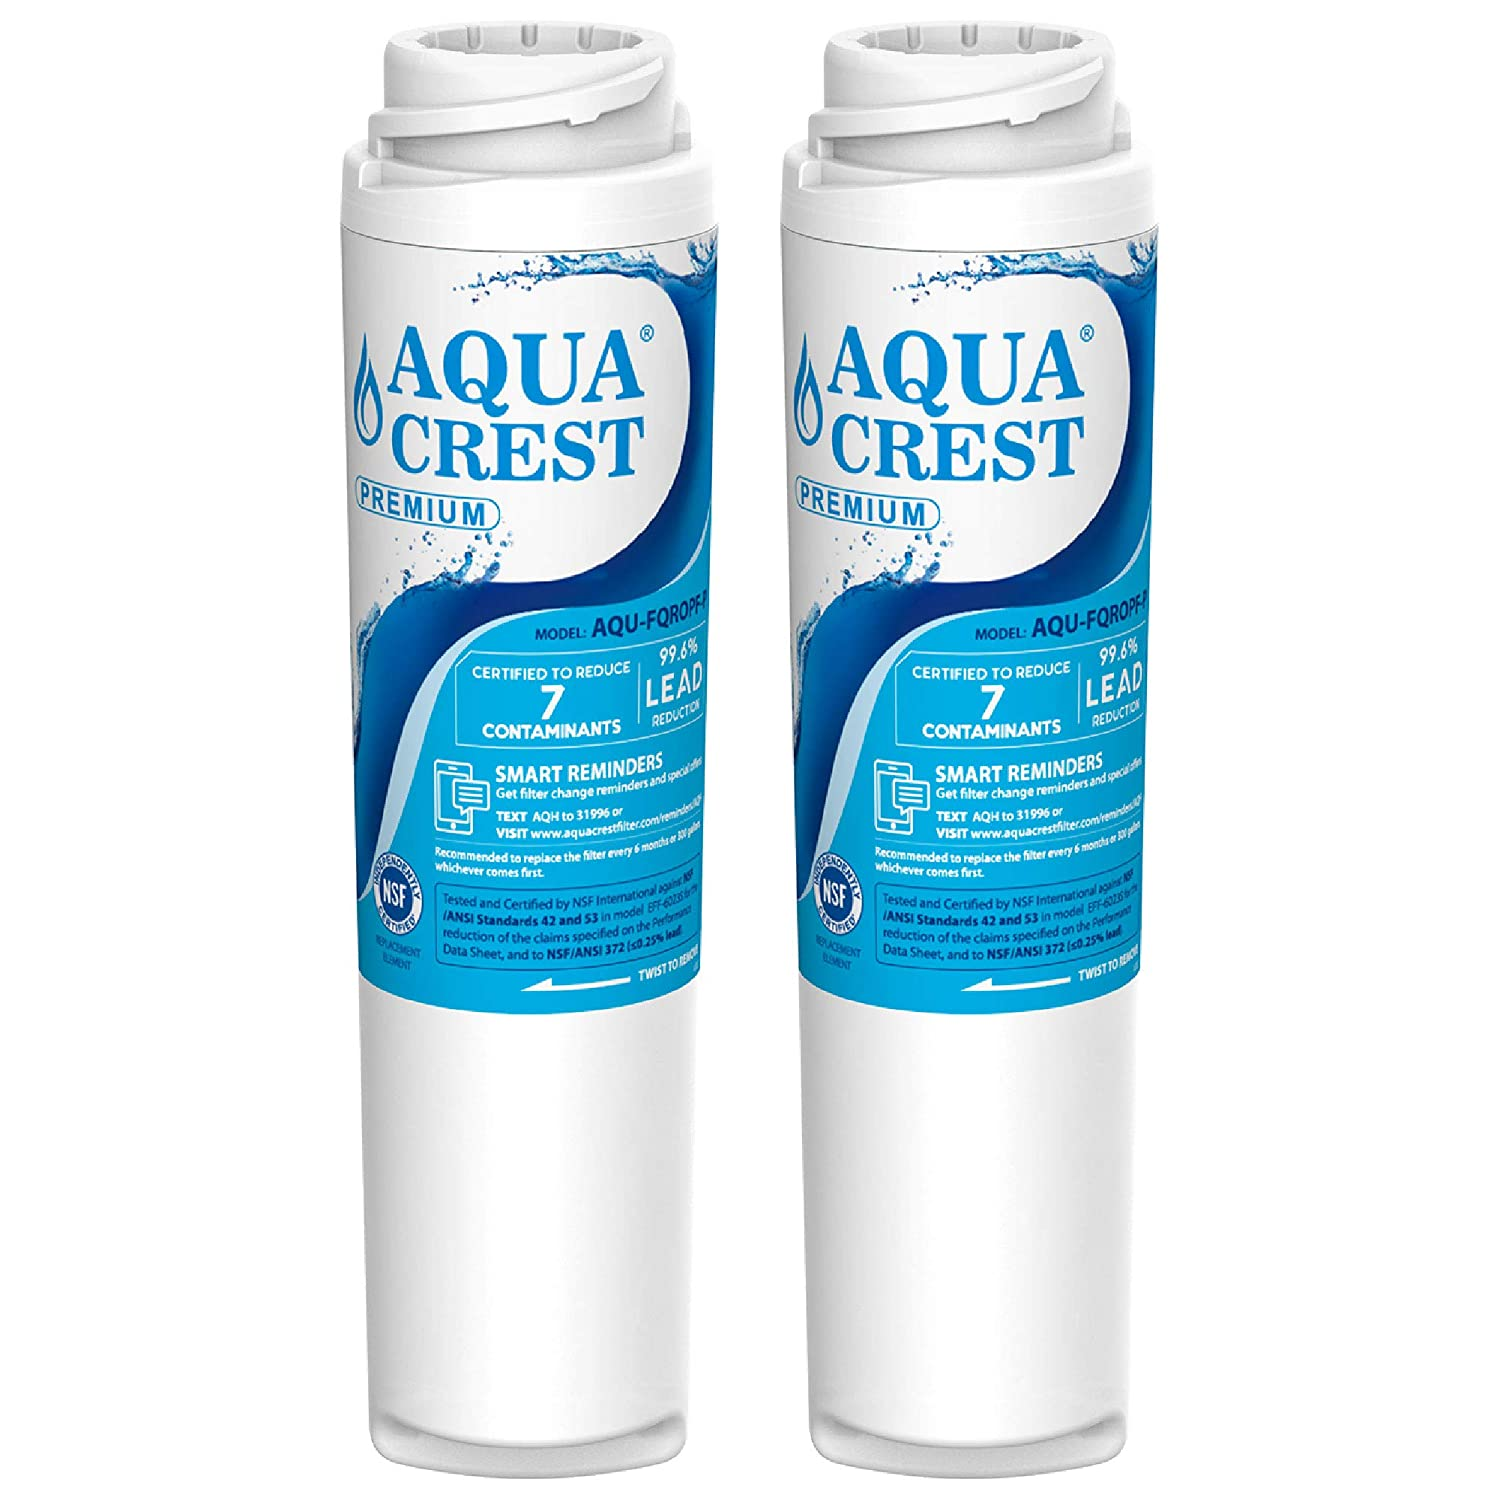 AQUACREST NSF 53 &42 Certified FQROPF Under Sink Water Filter, Replacement for GE FQROPF Reverse Osmosis Water Filter (1 Set)